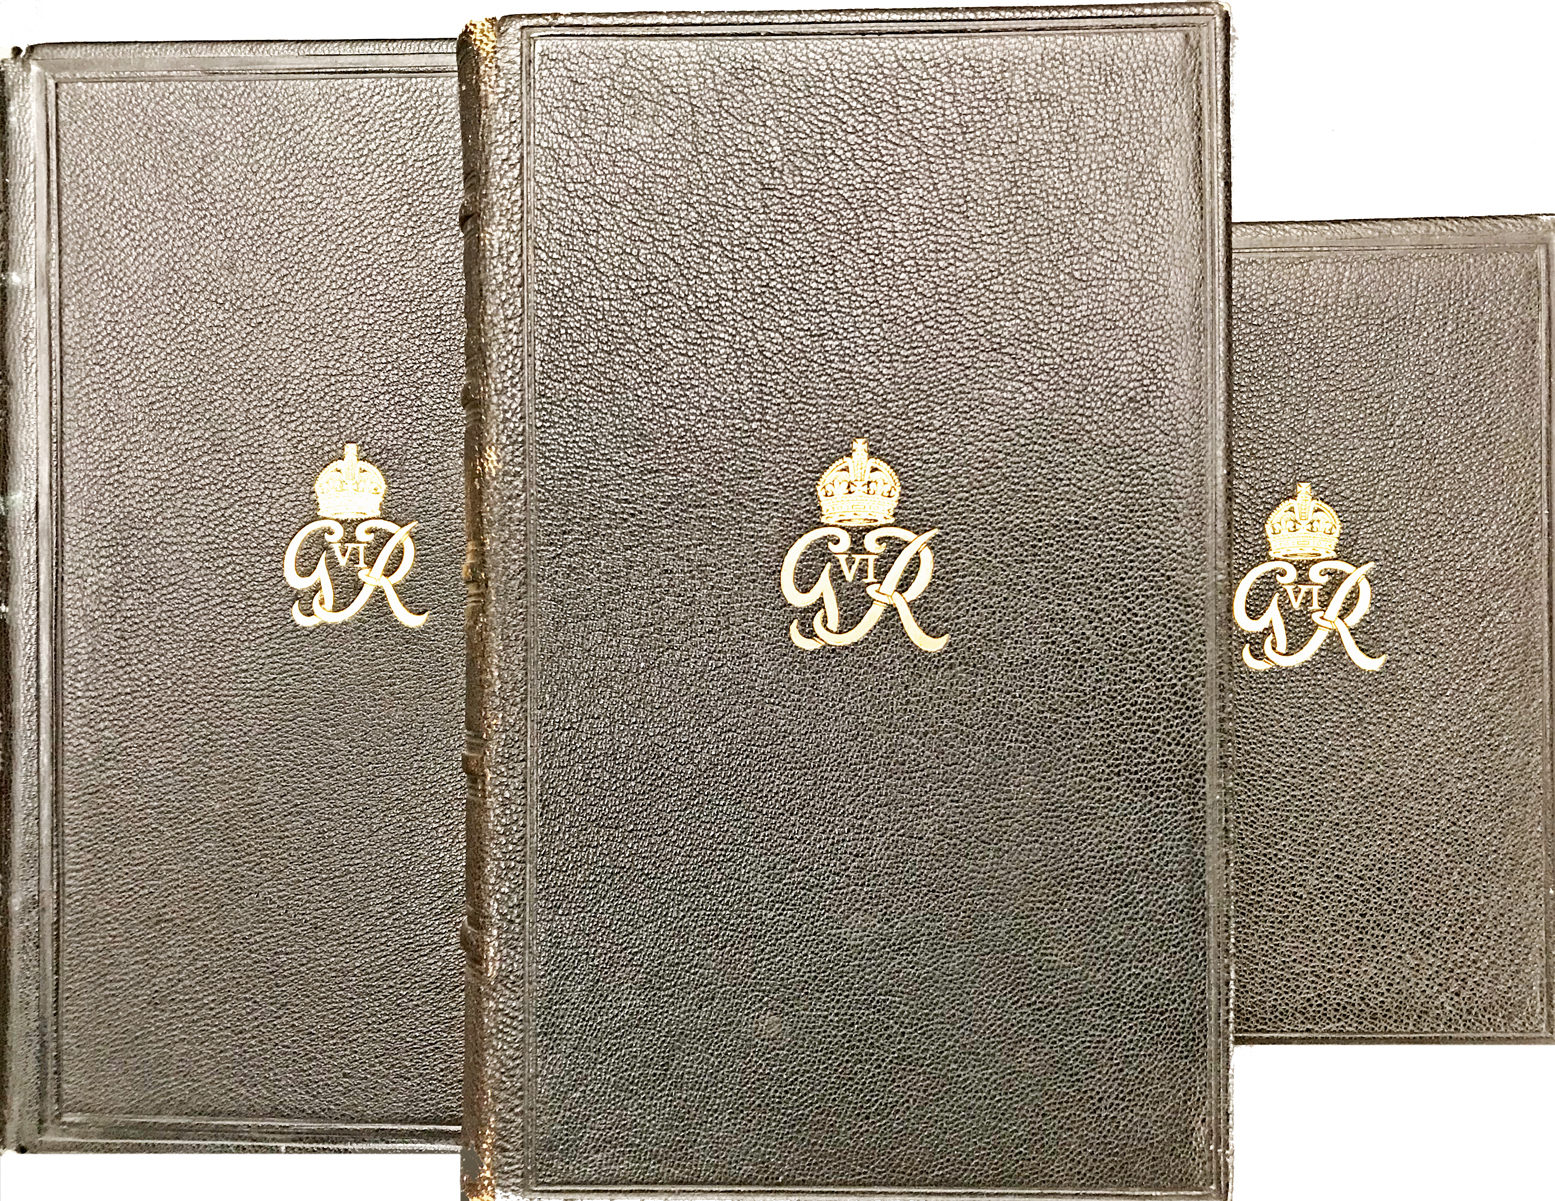 The King's Bible: Three Gift Presentation Copies Bearing King George VI's Emblem